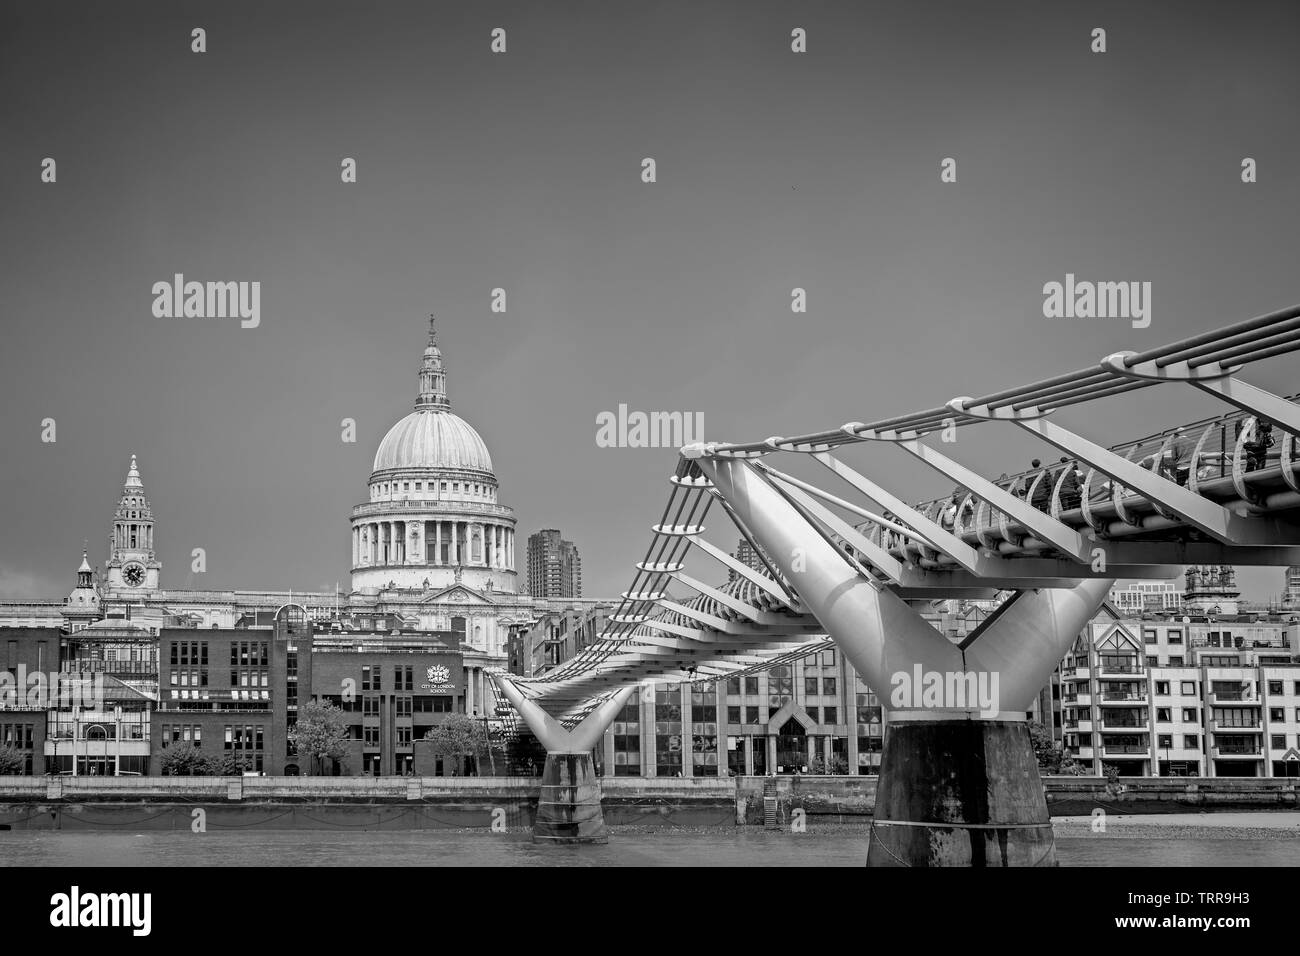 Millennium Bridge and St. Pauls Cathedral - Stock Image